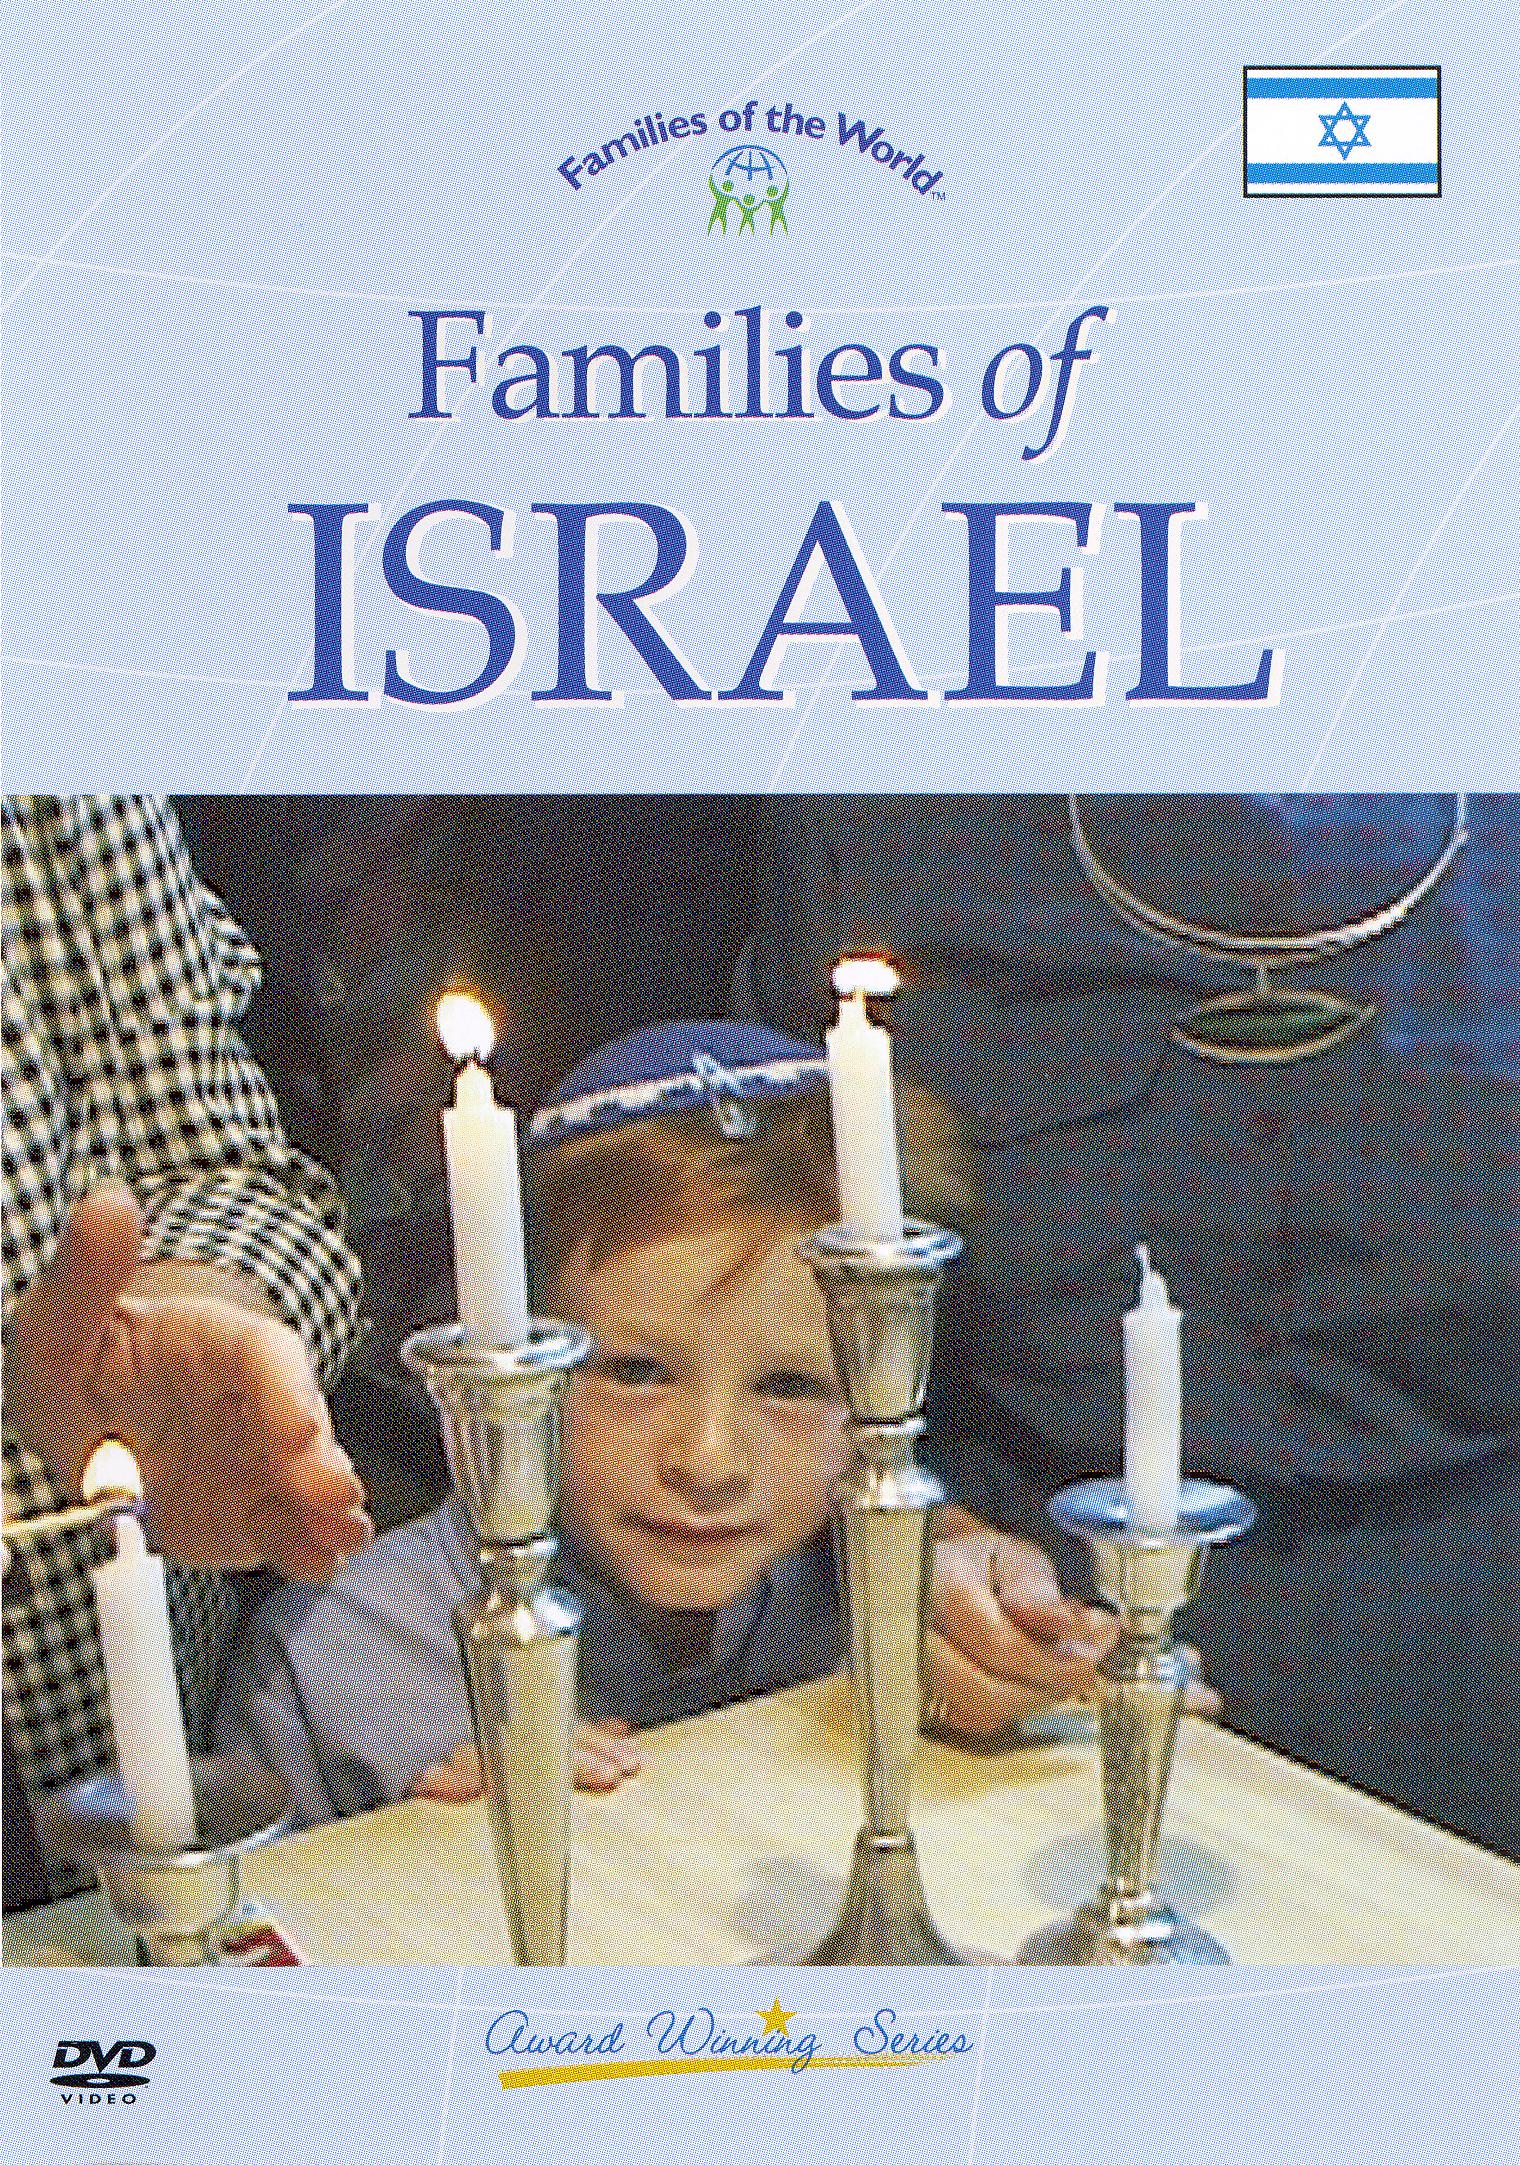 Families of the World: Families of Israel